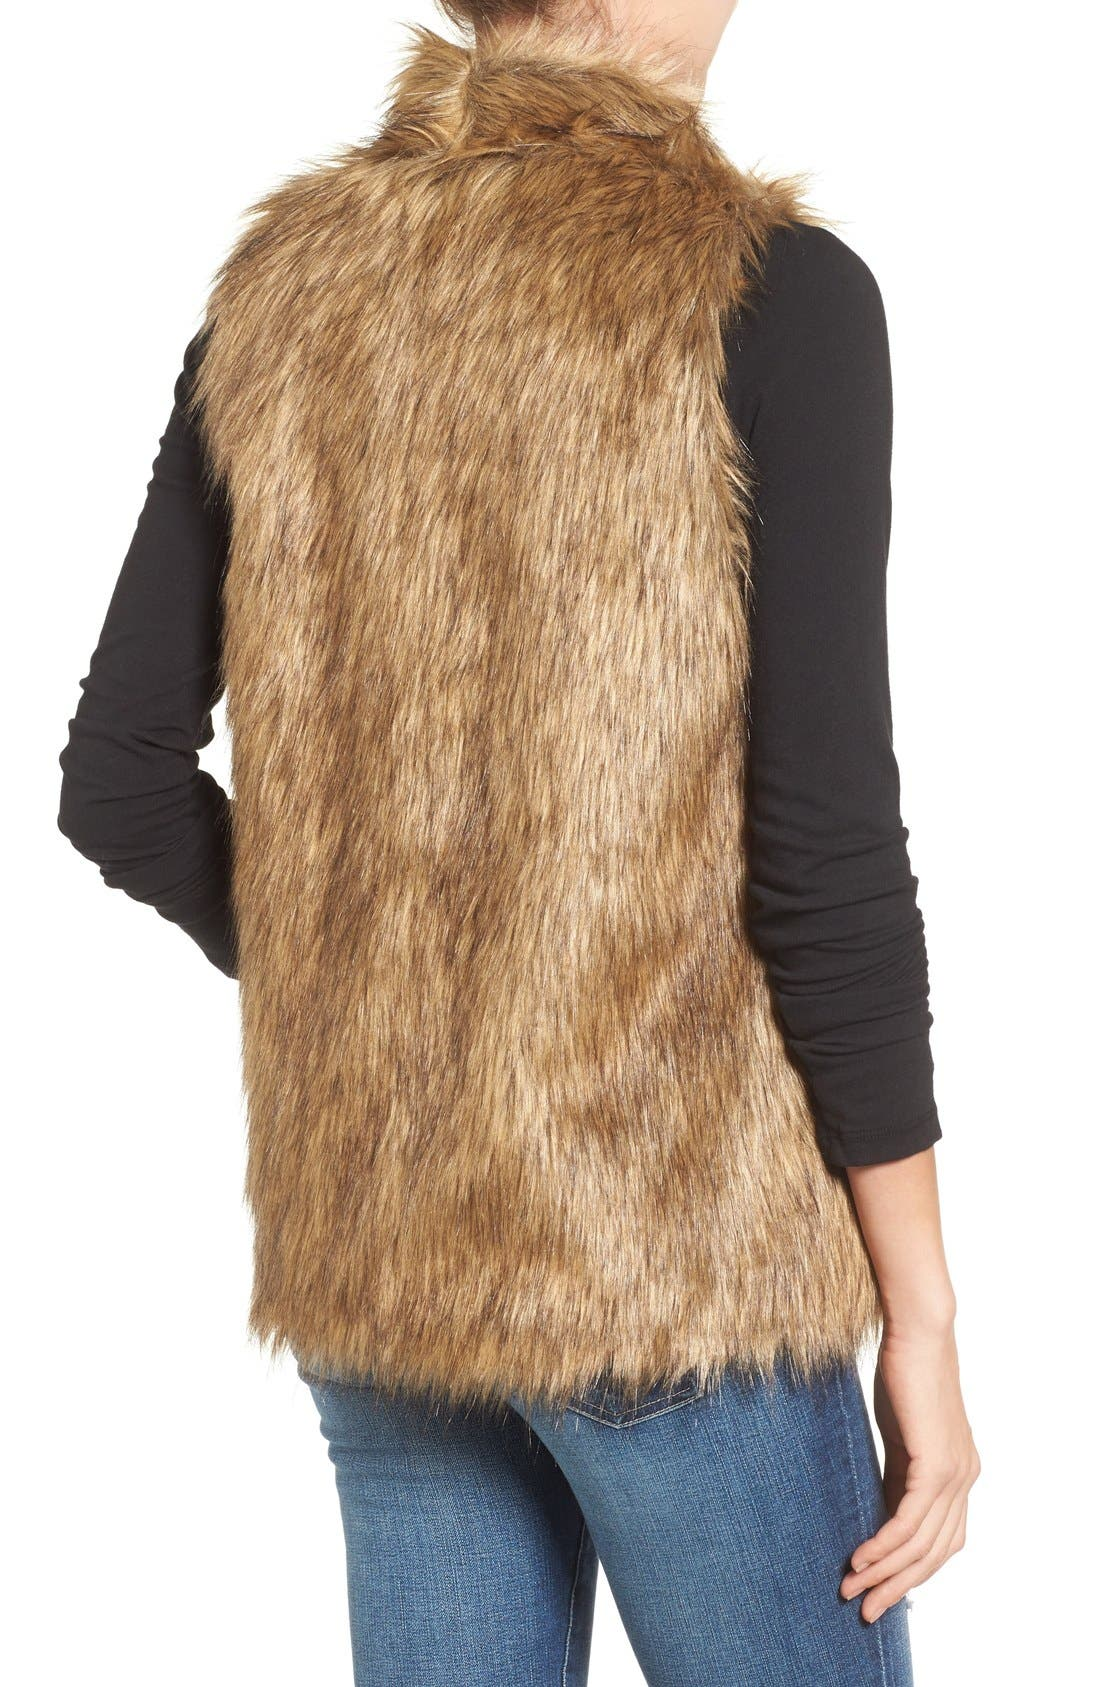 Faux Fur Vest,                             Alternate thumbnail 5, color,                             250